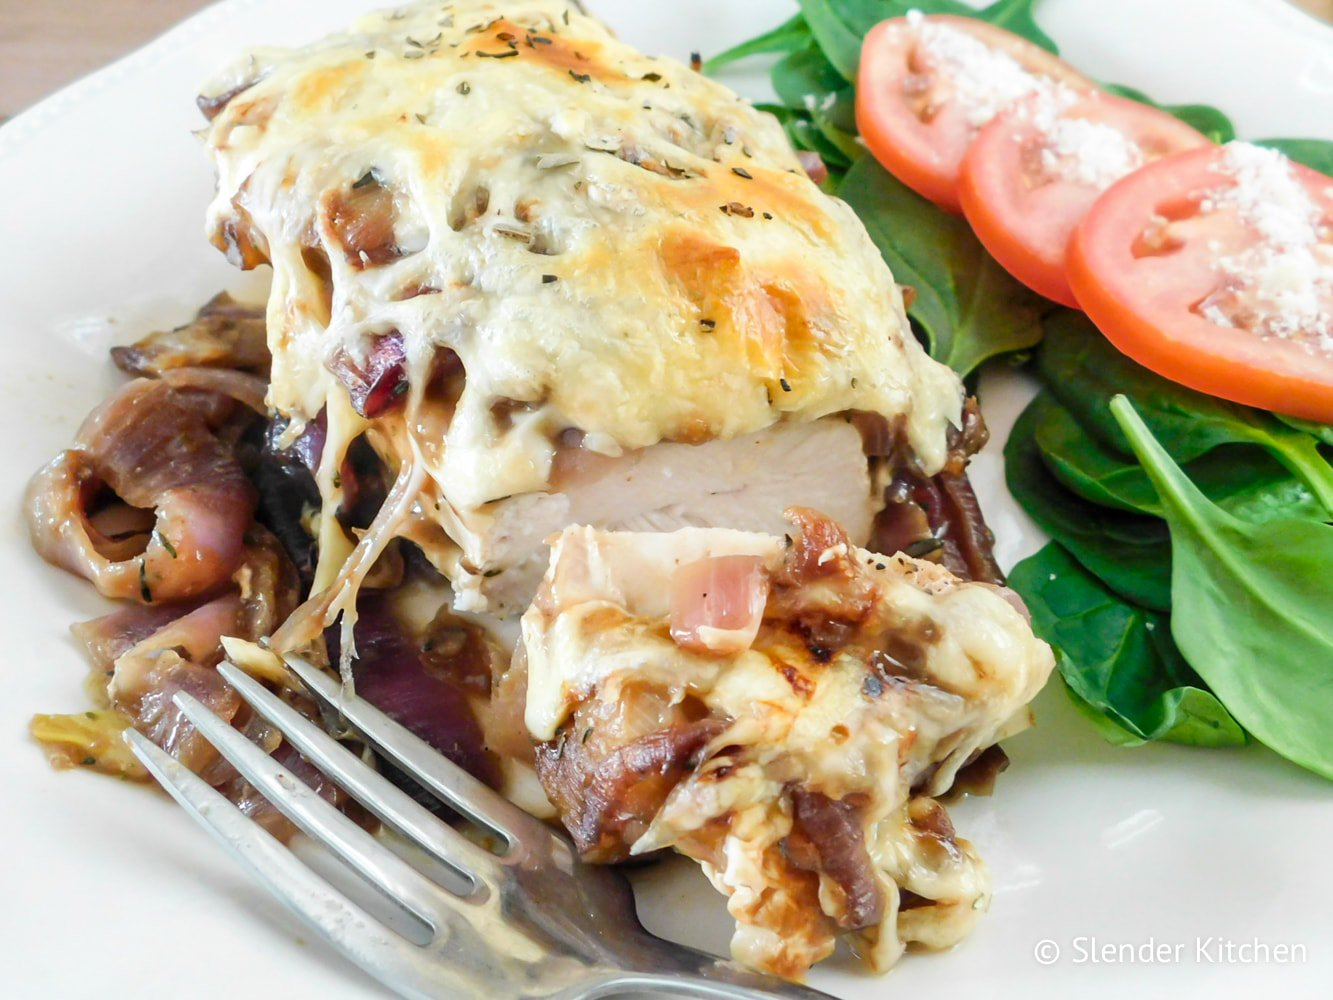 French Onion Soup Chicken on a plate with lettuce and tomato salad.